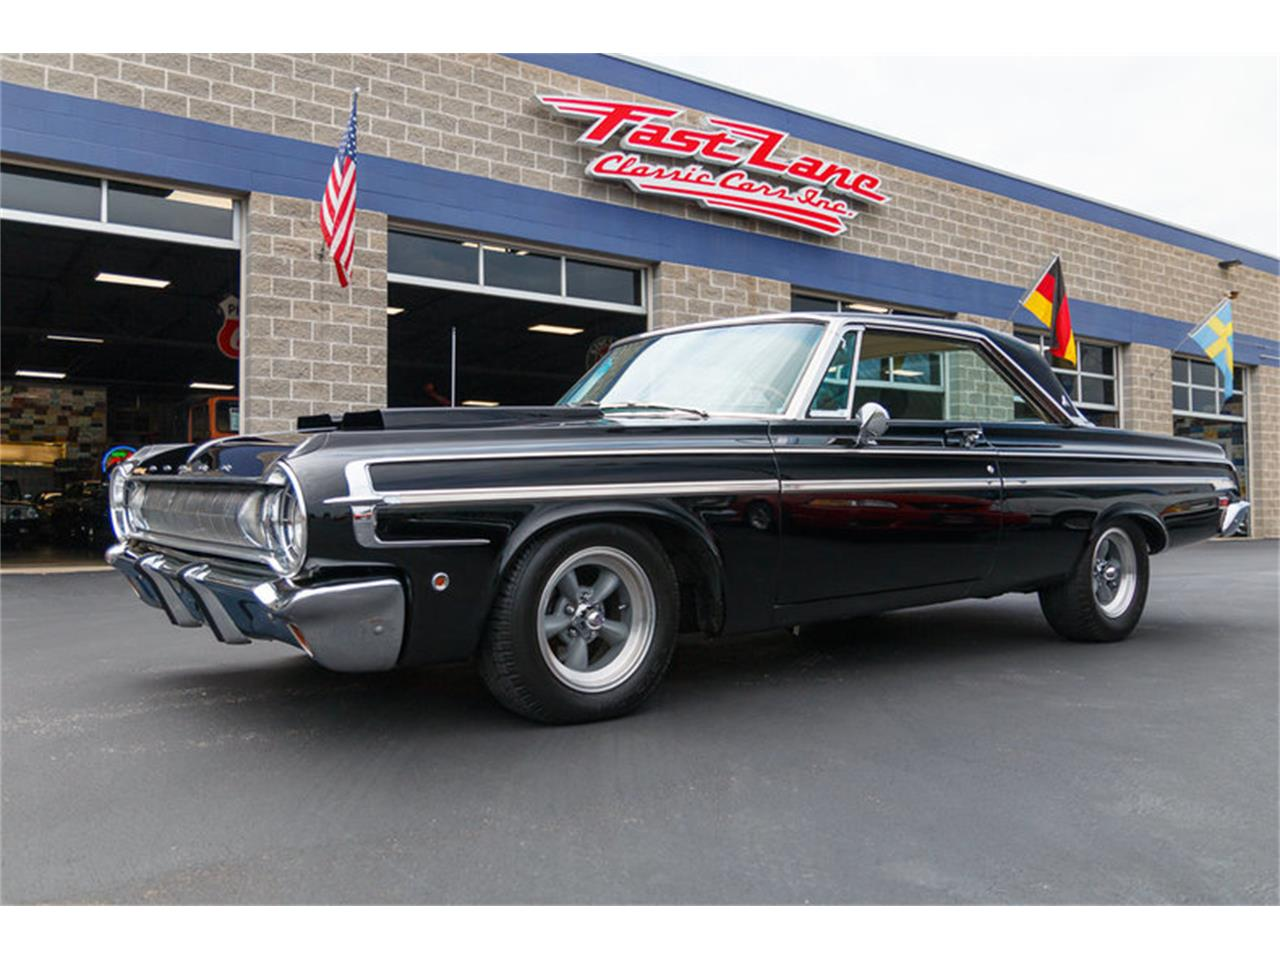 1964 Dodge Polara For Sale Cc 892293 4 Door Hardtop Large Picture Of 64 J4hx